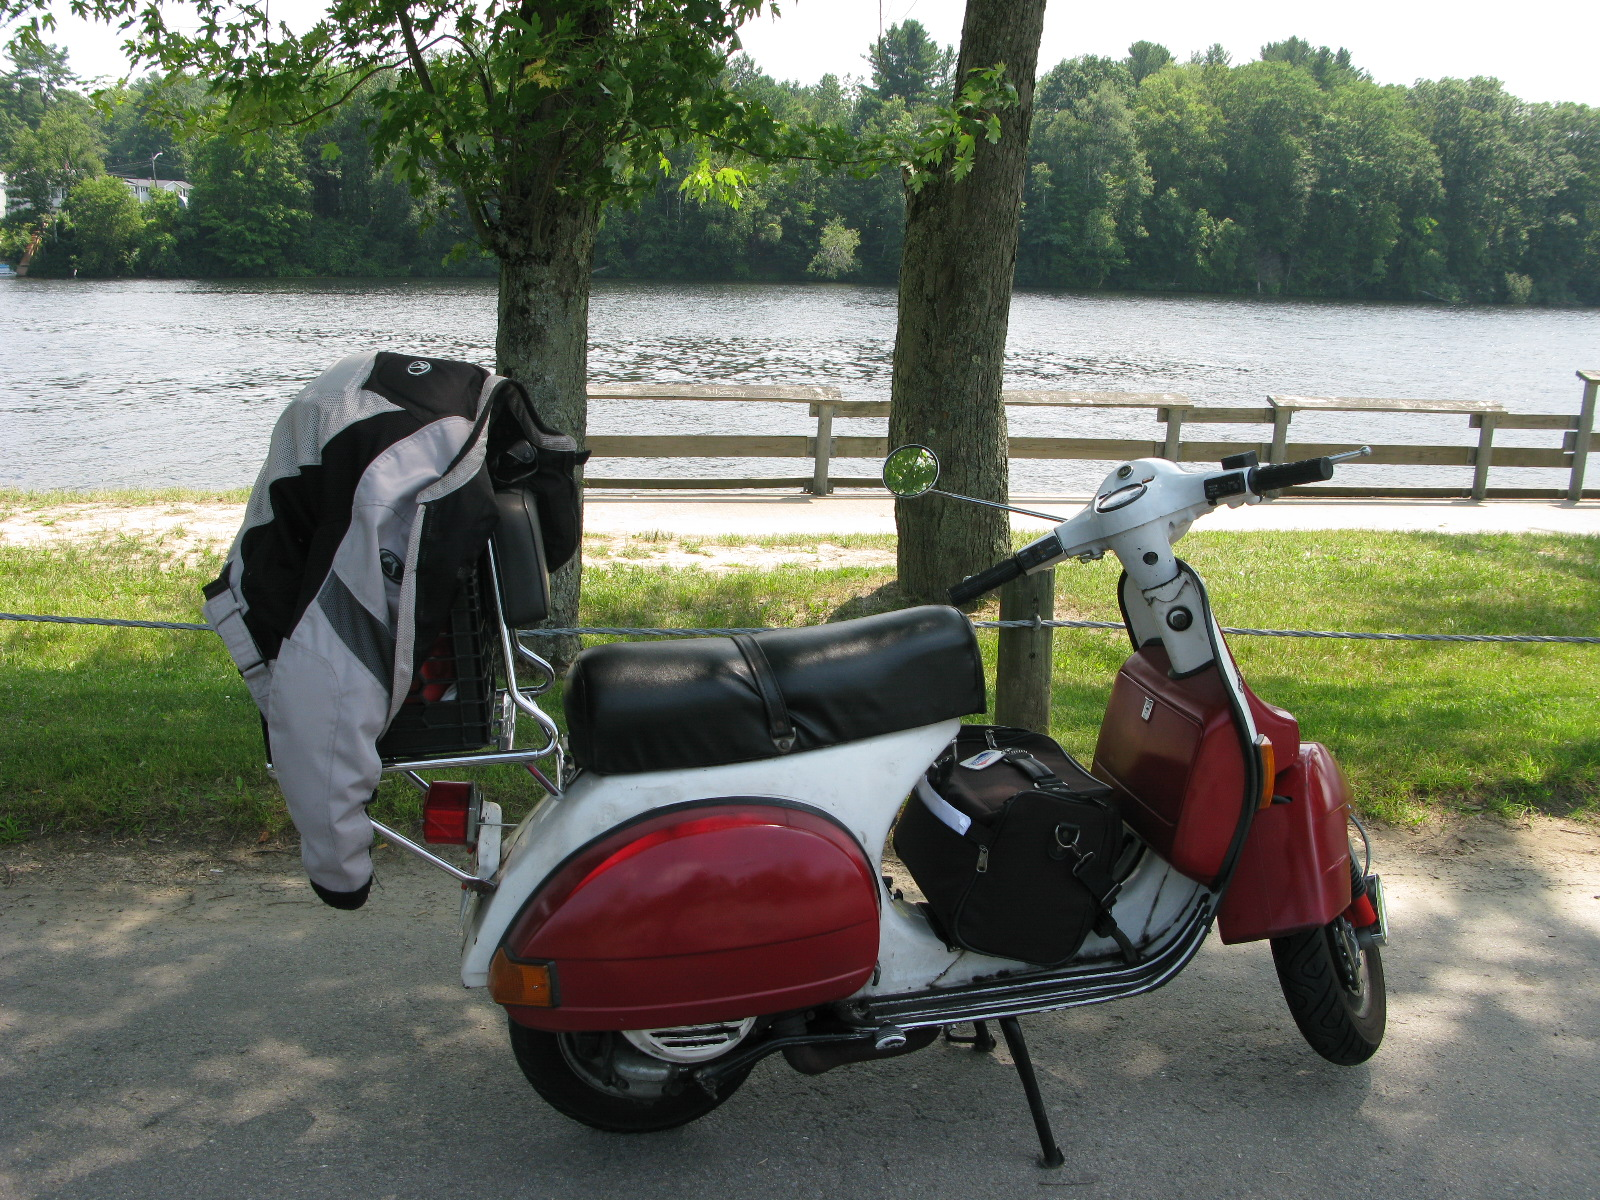 Vespafrog Vespa Px125e Wiring Diagram All Told I Rode 500 Miles On The Trip Averaging About 65 Per Gallon Two Fill Ups Broke 70 It Was A Long Ride With Return Being